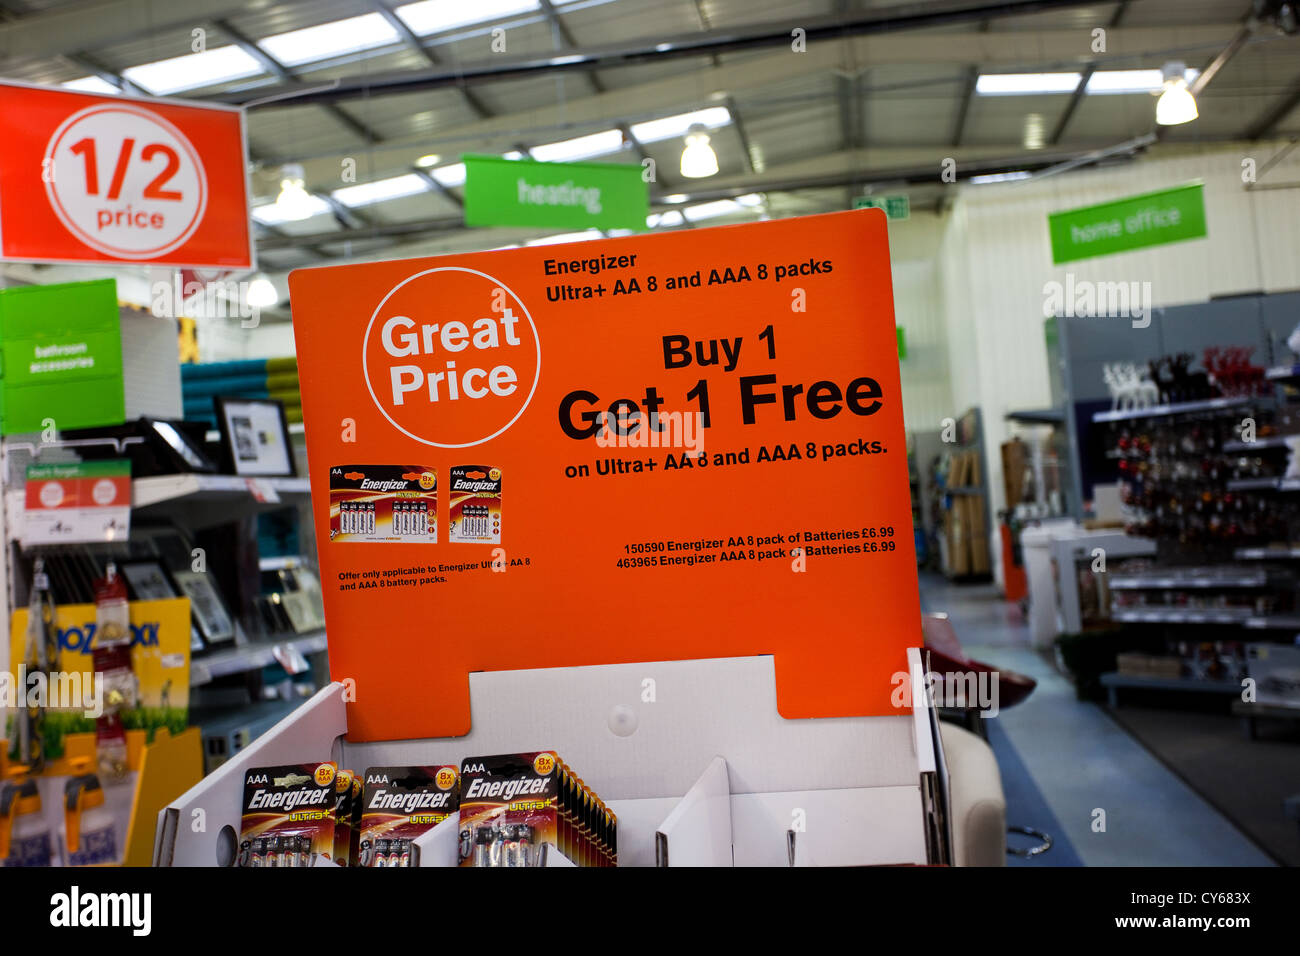 Great price _ Buy 1 Get 1 free_ Bogof offers in Homebase British home improvement store, Formby, Merseyside, UK - Stock Image